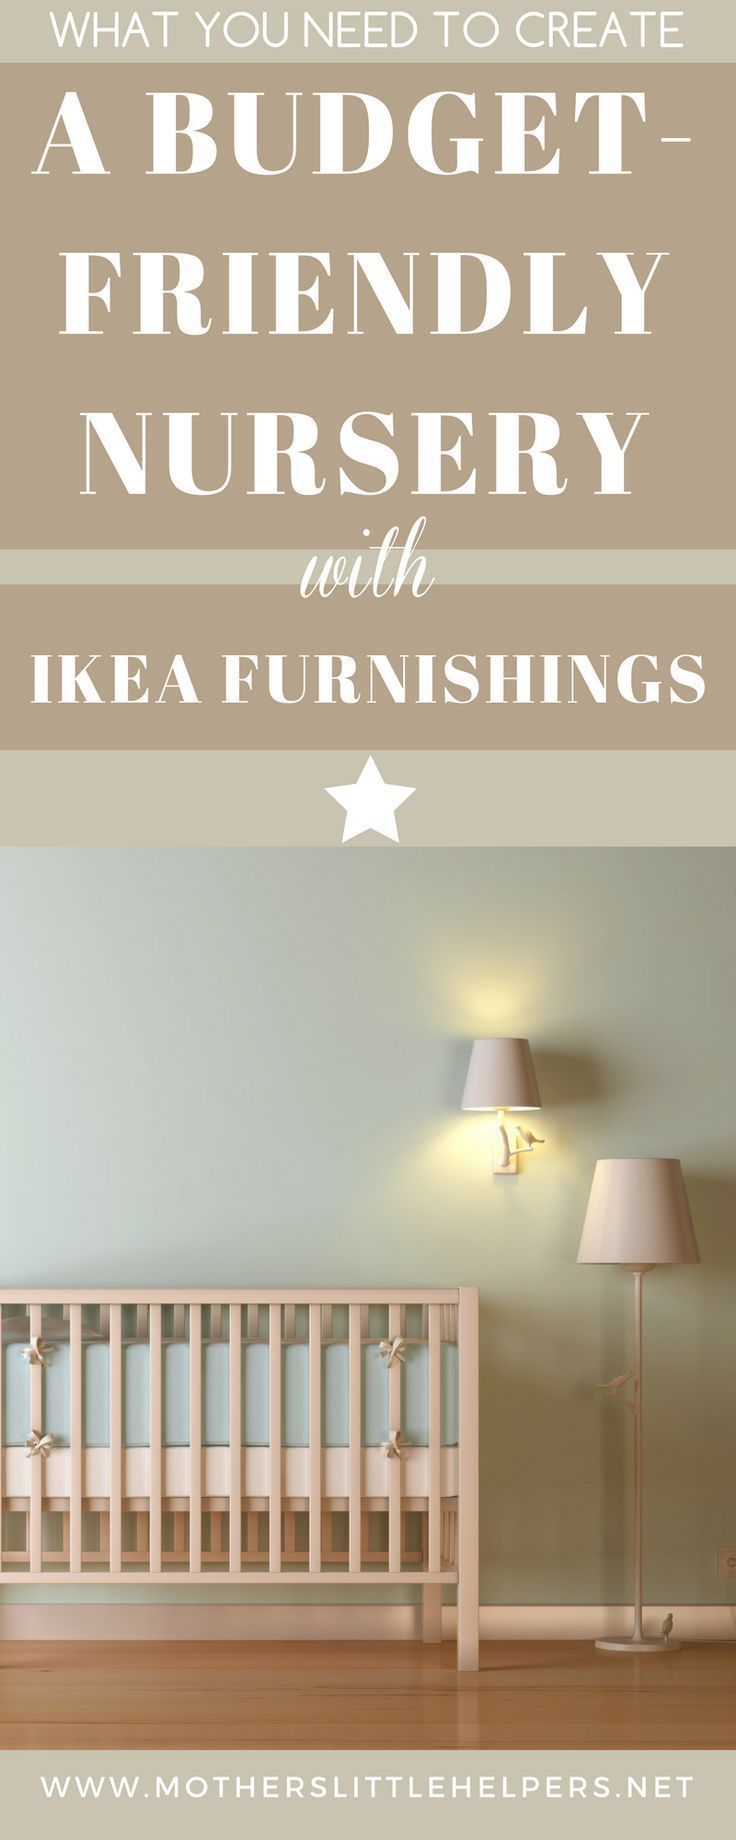 This is what you need to create a budget-friendly nursery with IKEA. The timeless design elements make for a room you won't have to remodel for years to come.   Nursery Furnishings   How to Plan a baby Nursery   ideas   neutral   layout   girl   boy   decor   DIY   Baby   IKEA  